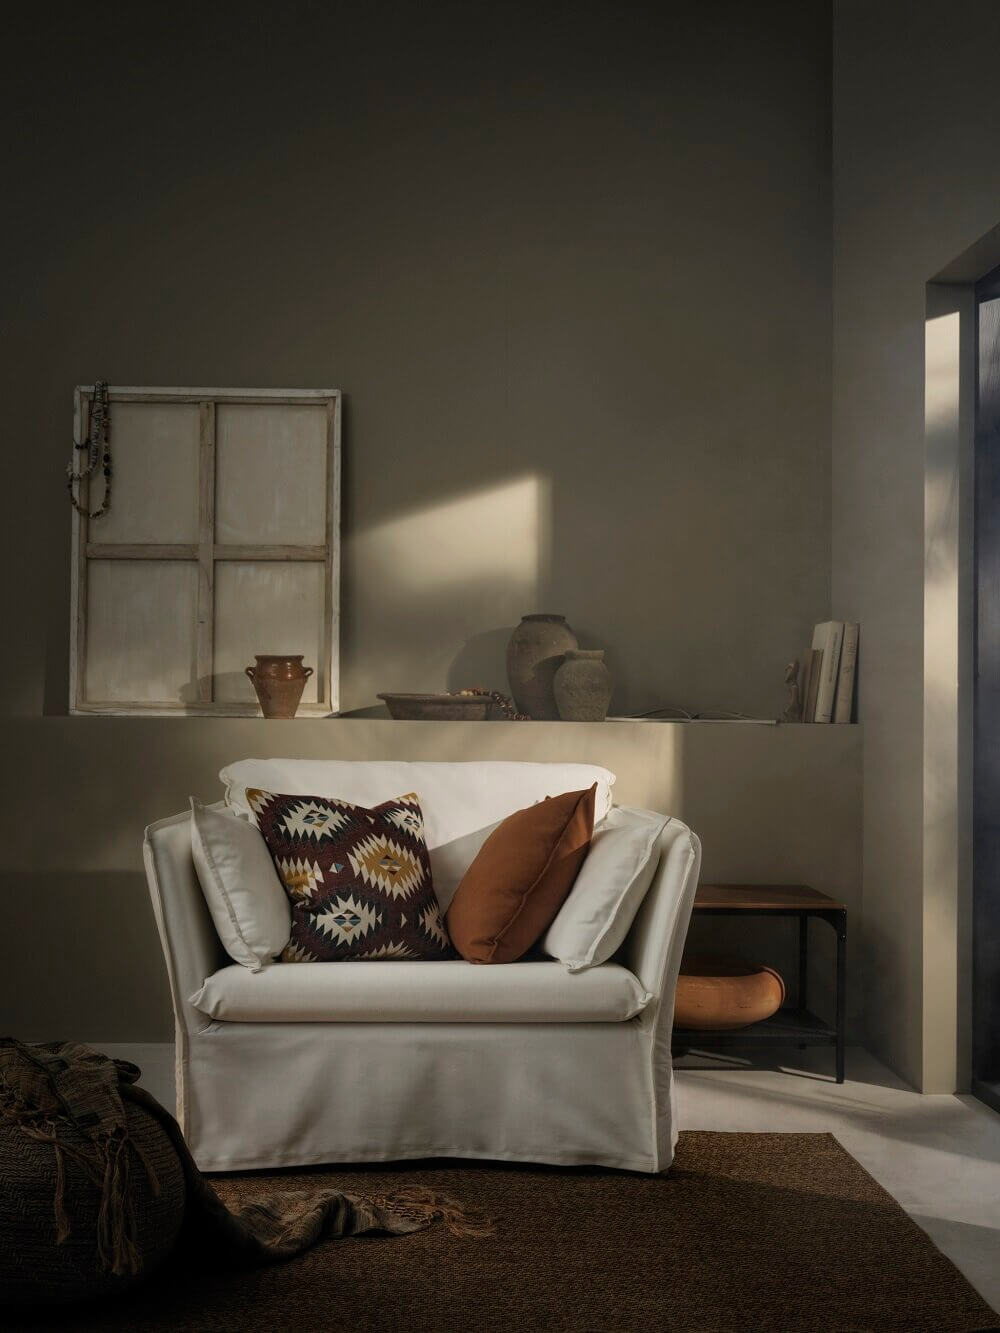 Embrace Autumn With IKEA's New July Collection